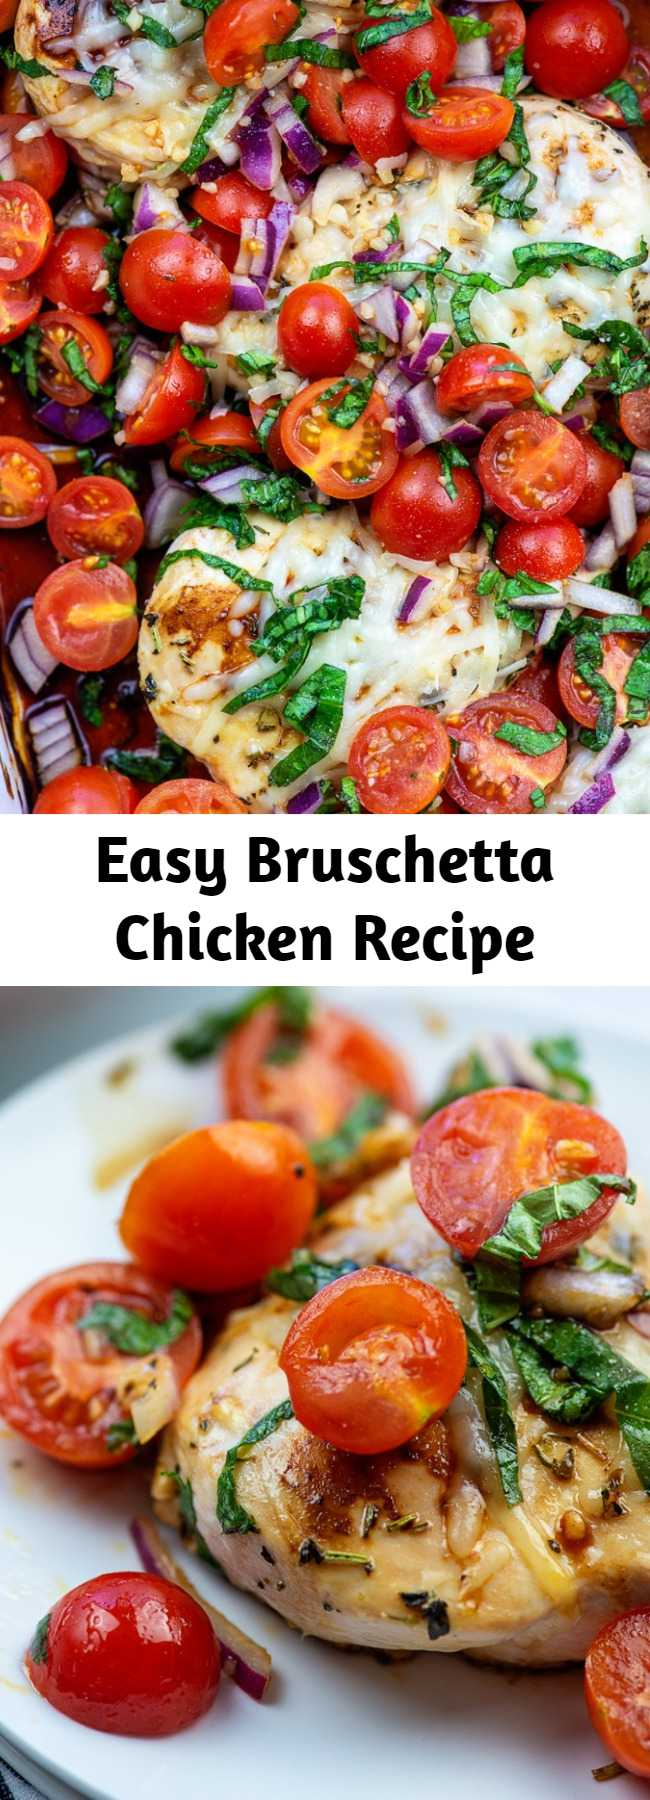 Easy Bruschetta Chicken Recipe - BRUSCHETTA CHICKEN made low carb! This delicious chicken recipe is so simple, but it's packing some serious flavor. This is amazing served over zucchini noodles or with a side salad. #recipe #lowcarb #keto #chicken